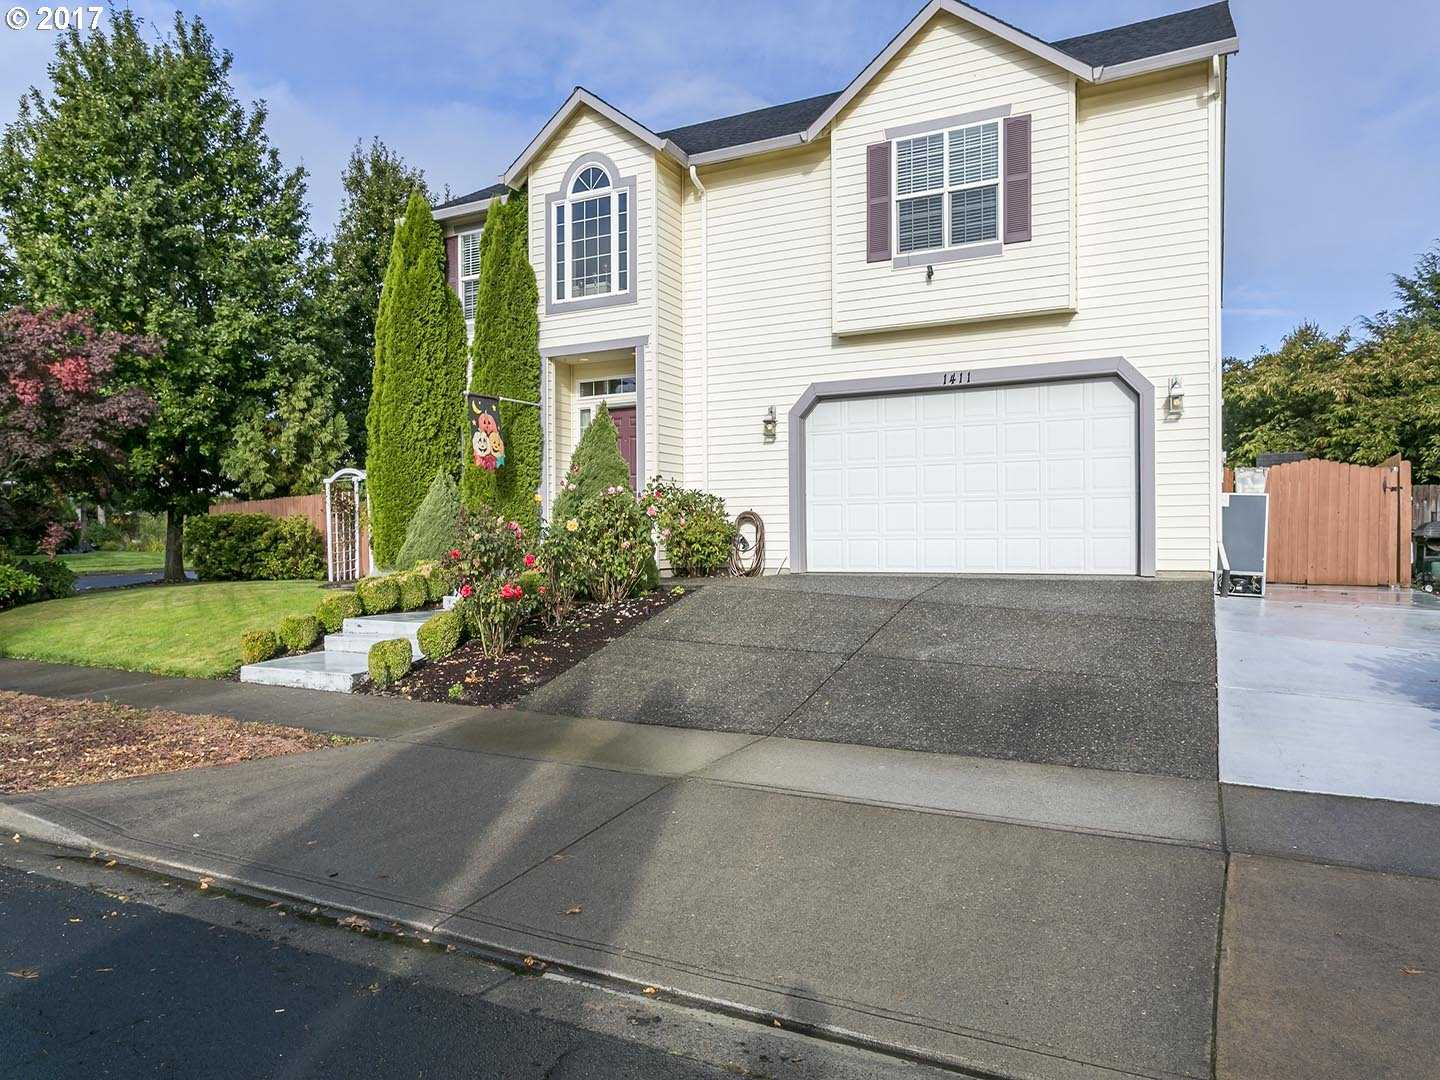 $475,000 - 4Br/3Ba -  for Sale in Pacific Grove, Forest Grove